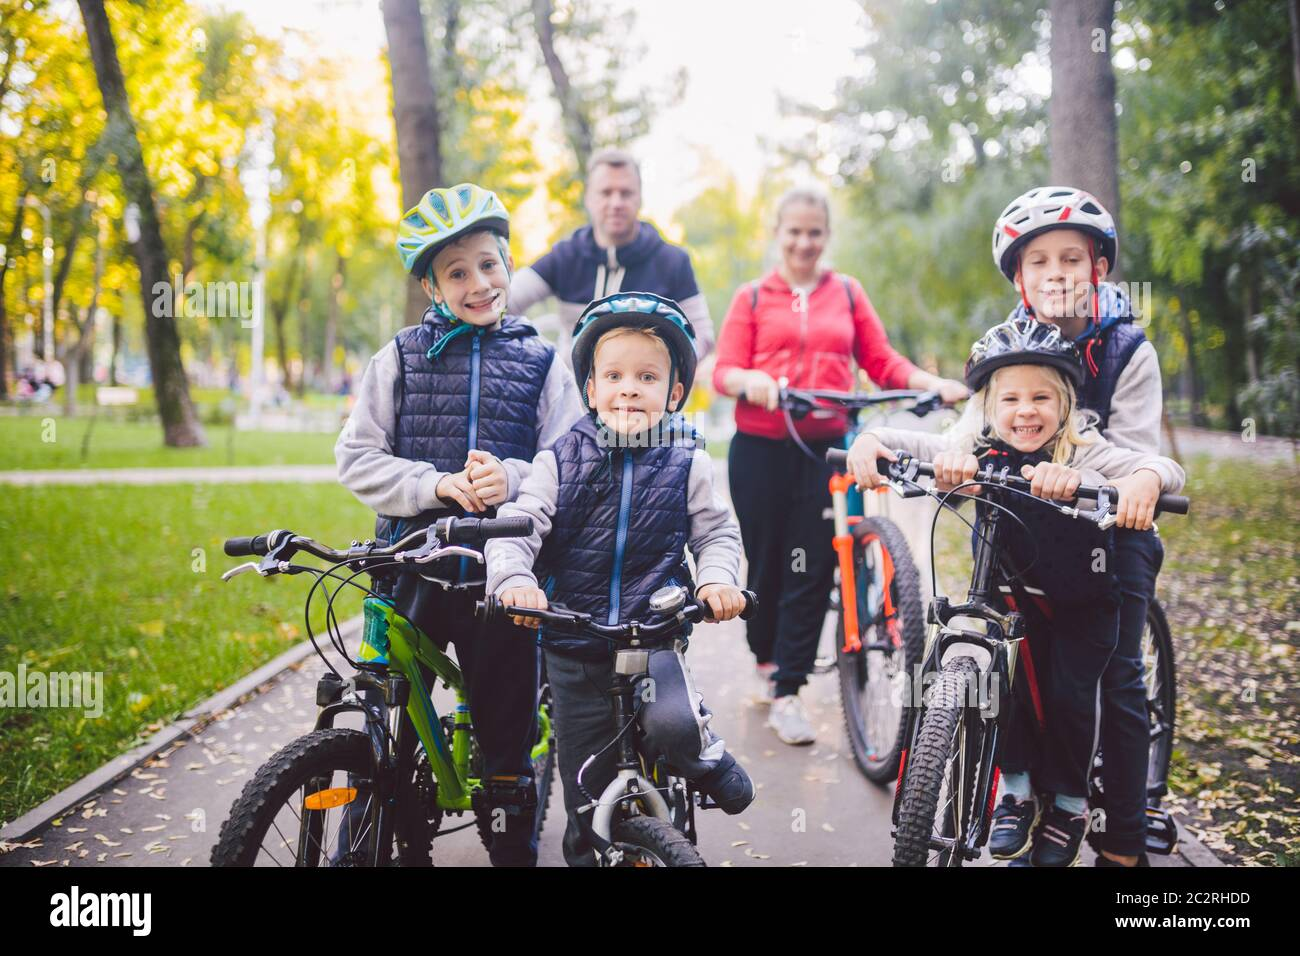 Theme family sports vacation in park in nature. big friendly Caucasian family of six people mountain bike riding in forest. Chil Stock Photo